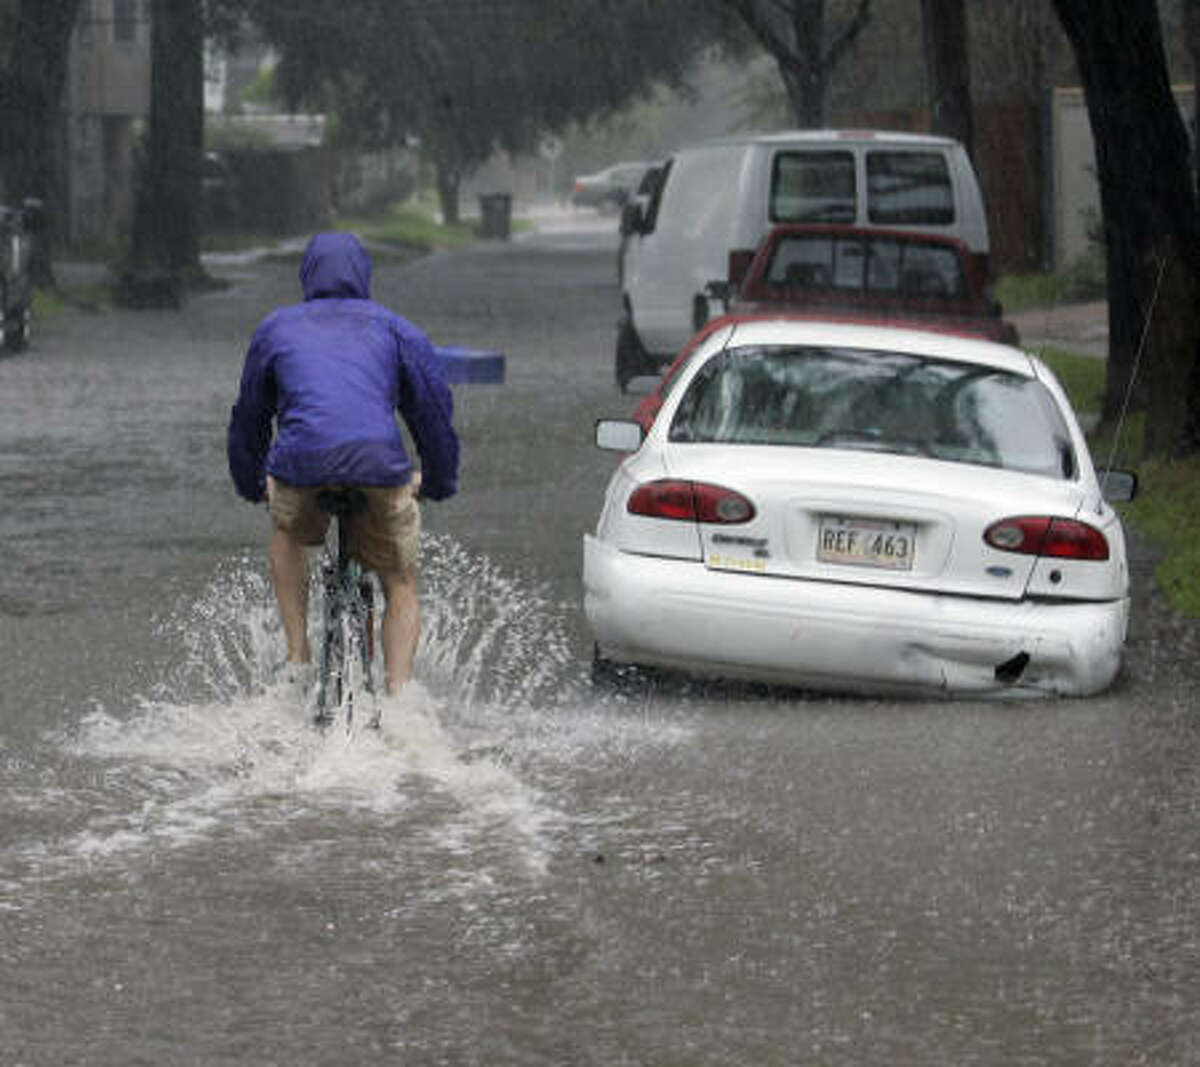 A man rides his bike through a flooded street in the Uptown section of New Orleans on Thursday. Humberto dumped heavy rain on much of Louisiana, flooding streets as it lumbered across the state.